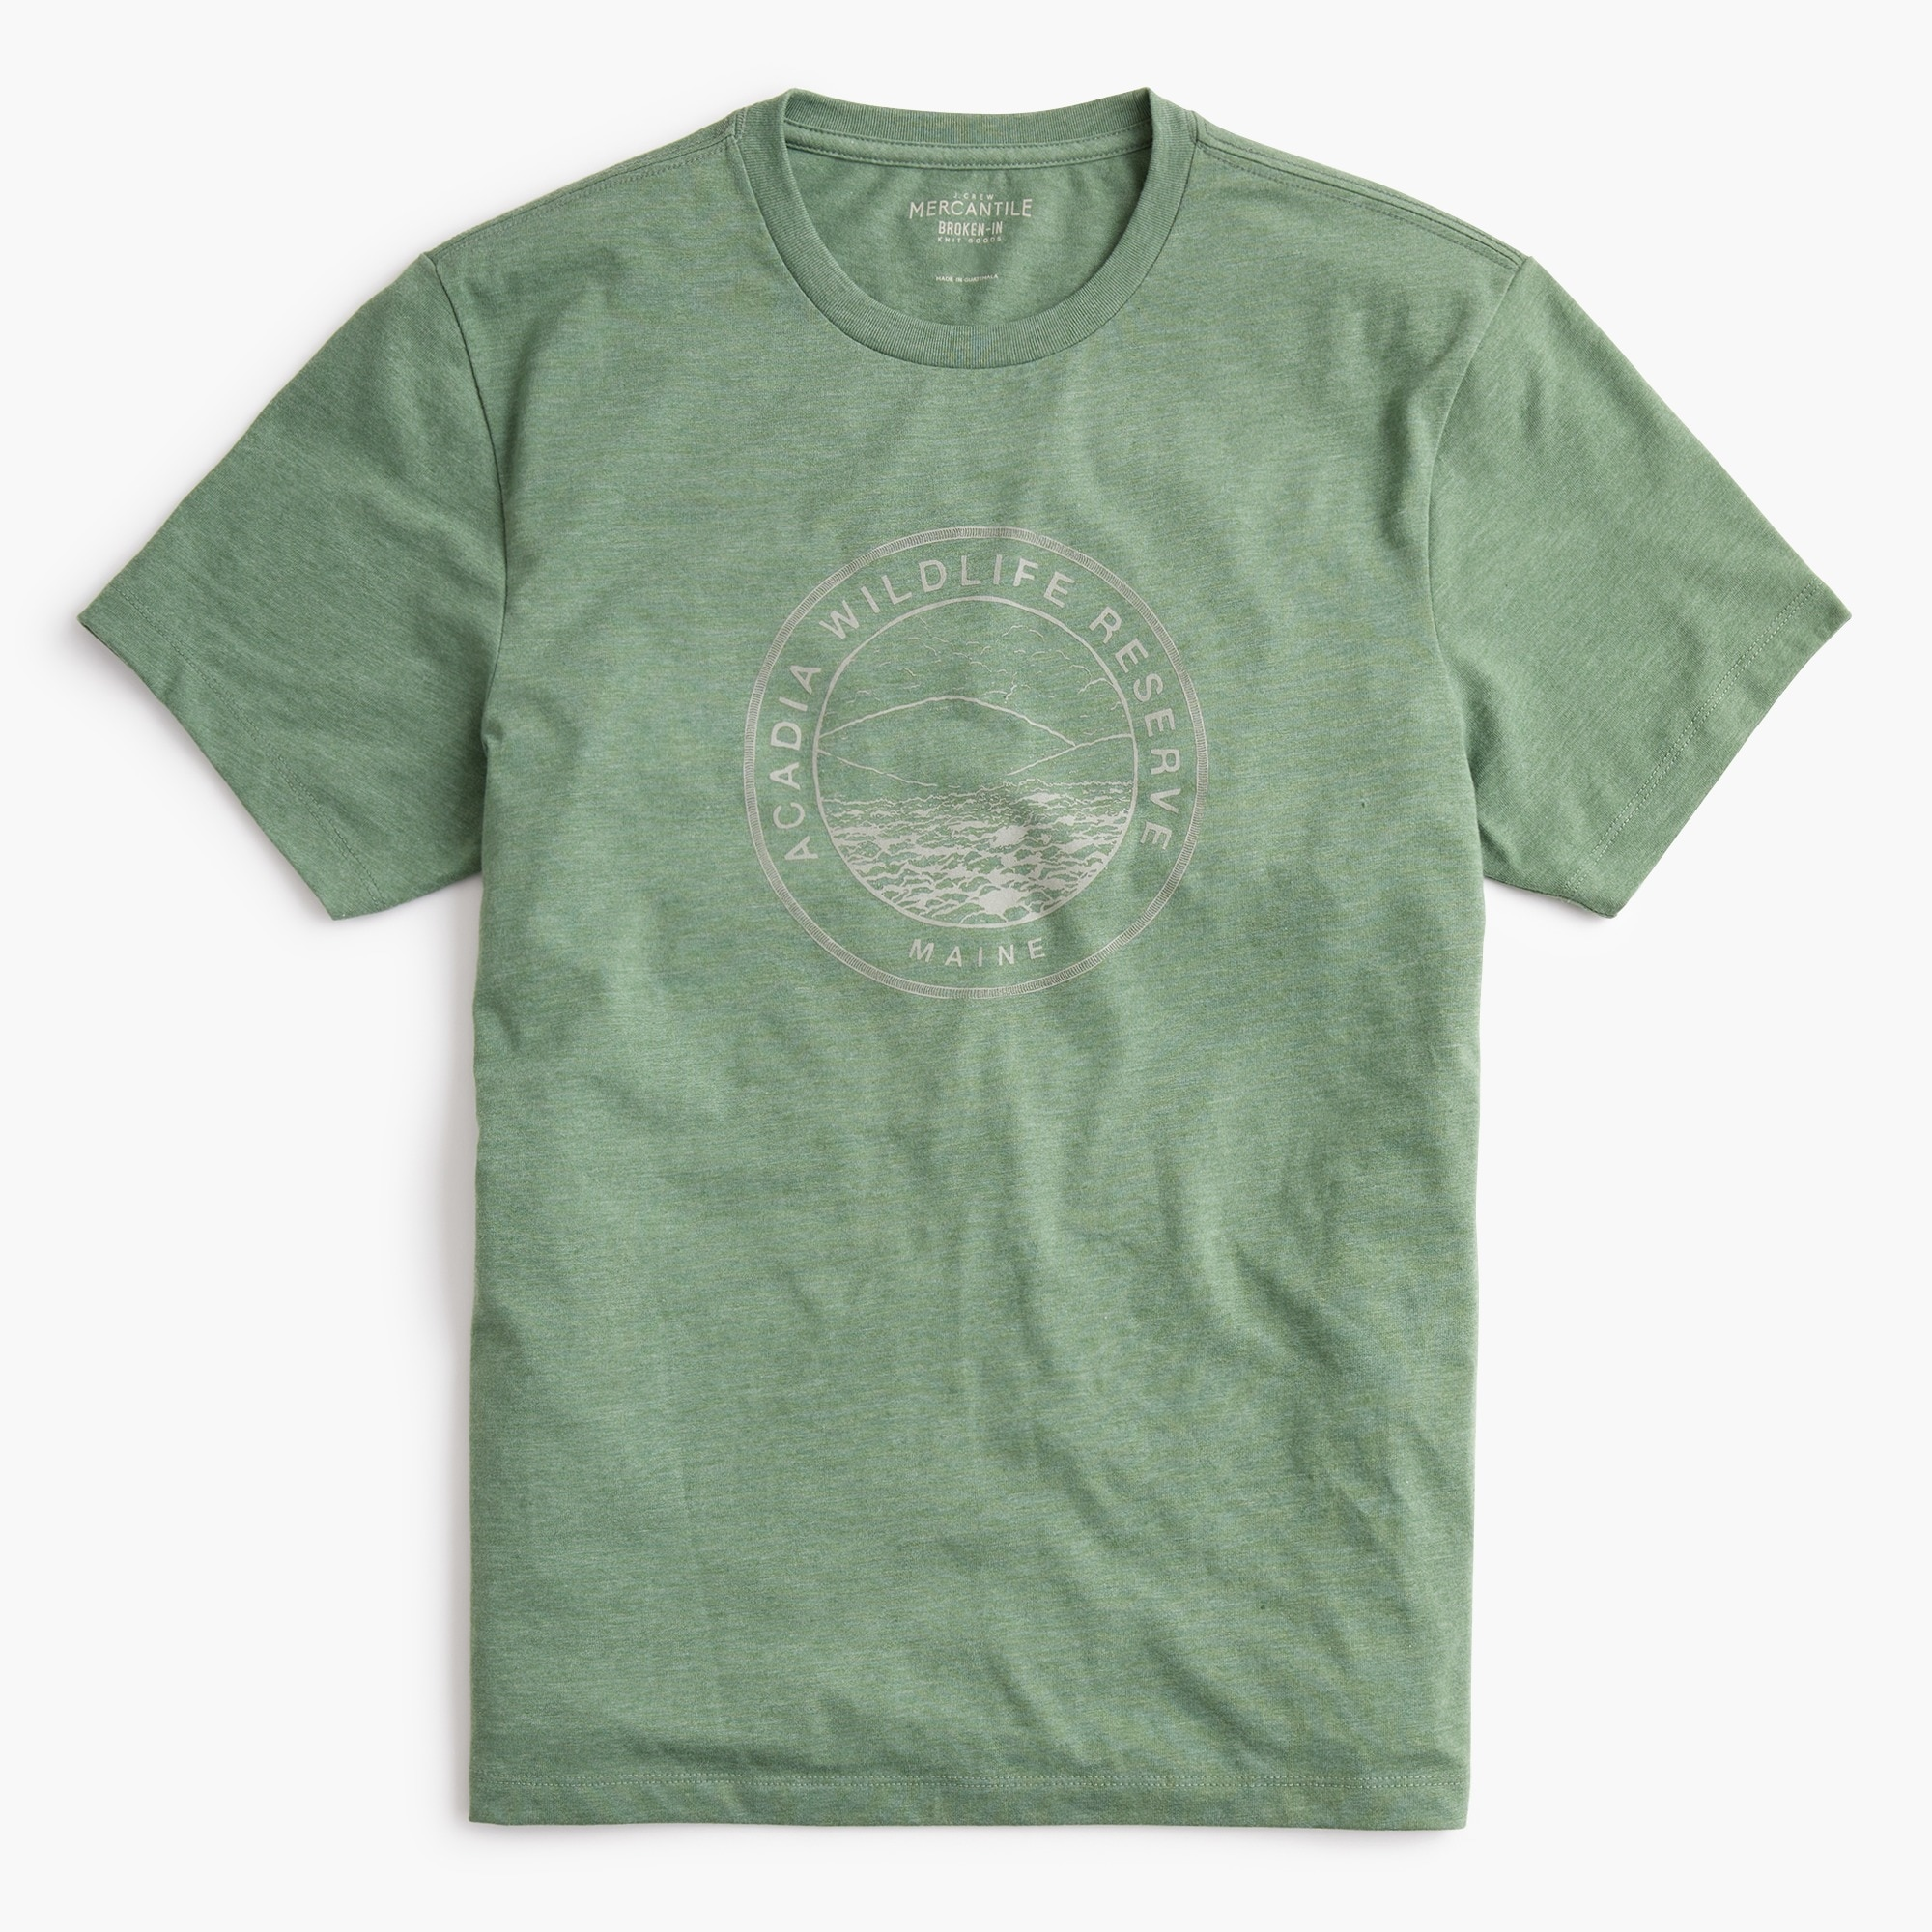 Image 3 for National park T-shirt